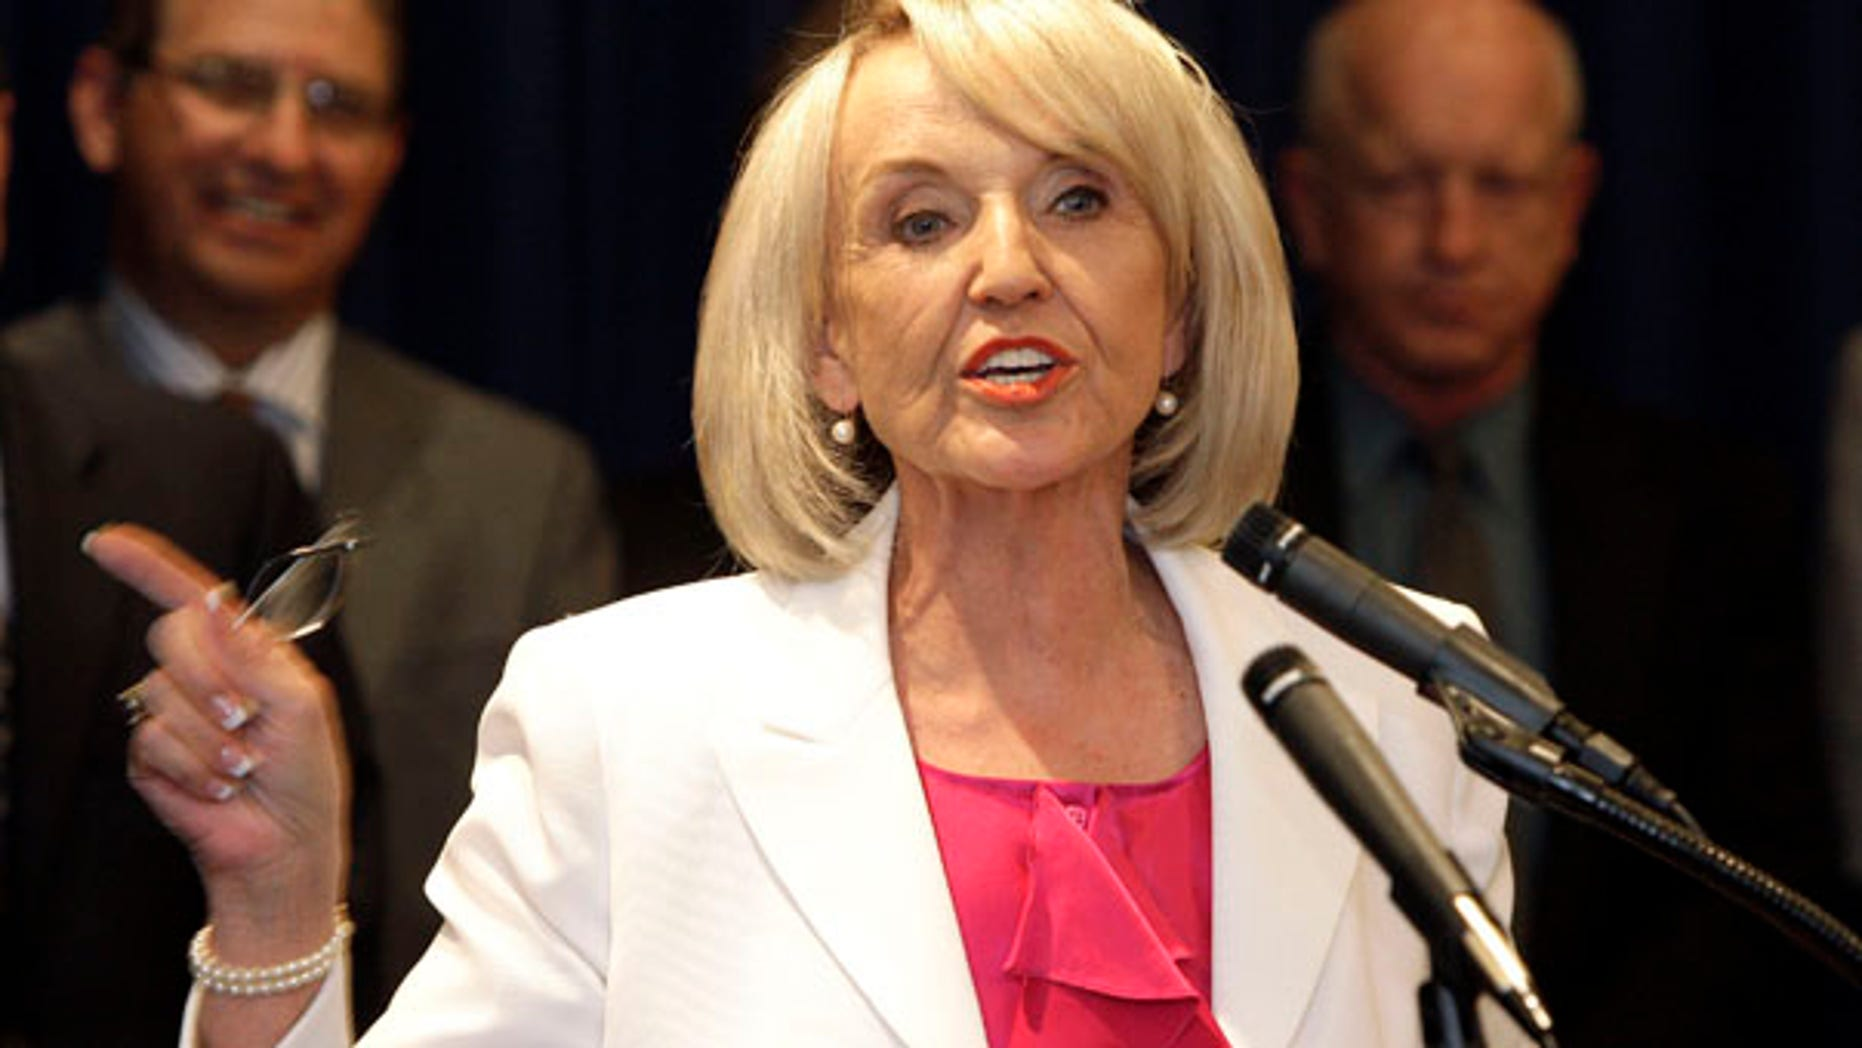 Arizona Gov. Jan Brewer, seen in this 2010 file photo, has vetoed a bill that would have allowed guns on public college campuses.